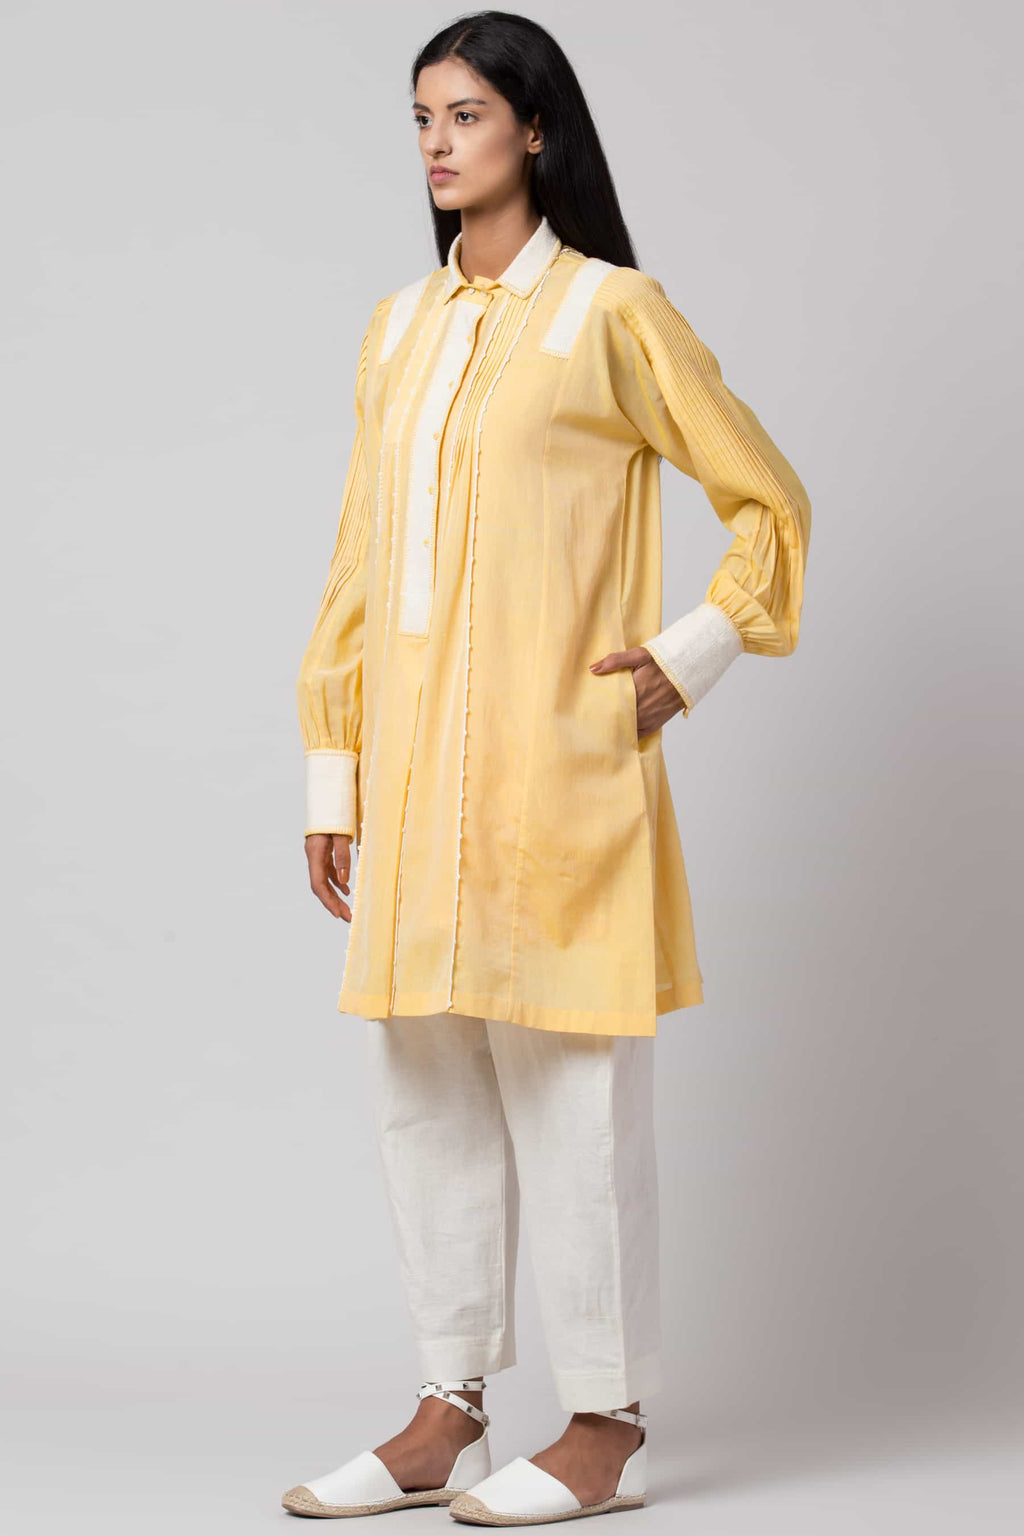 Yellow paneled crochet shirt dress made in 100% handwoven yarn dyed cotton Chanderi - side